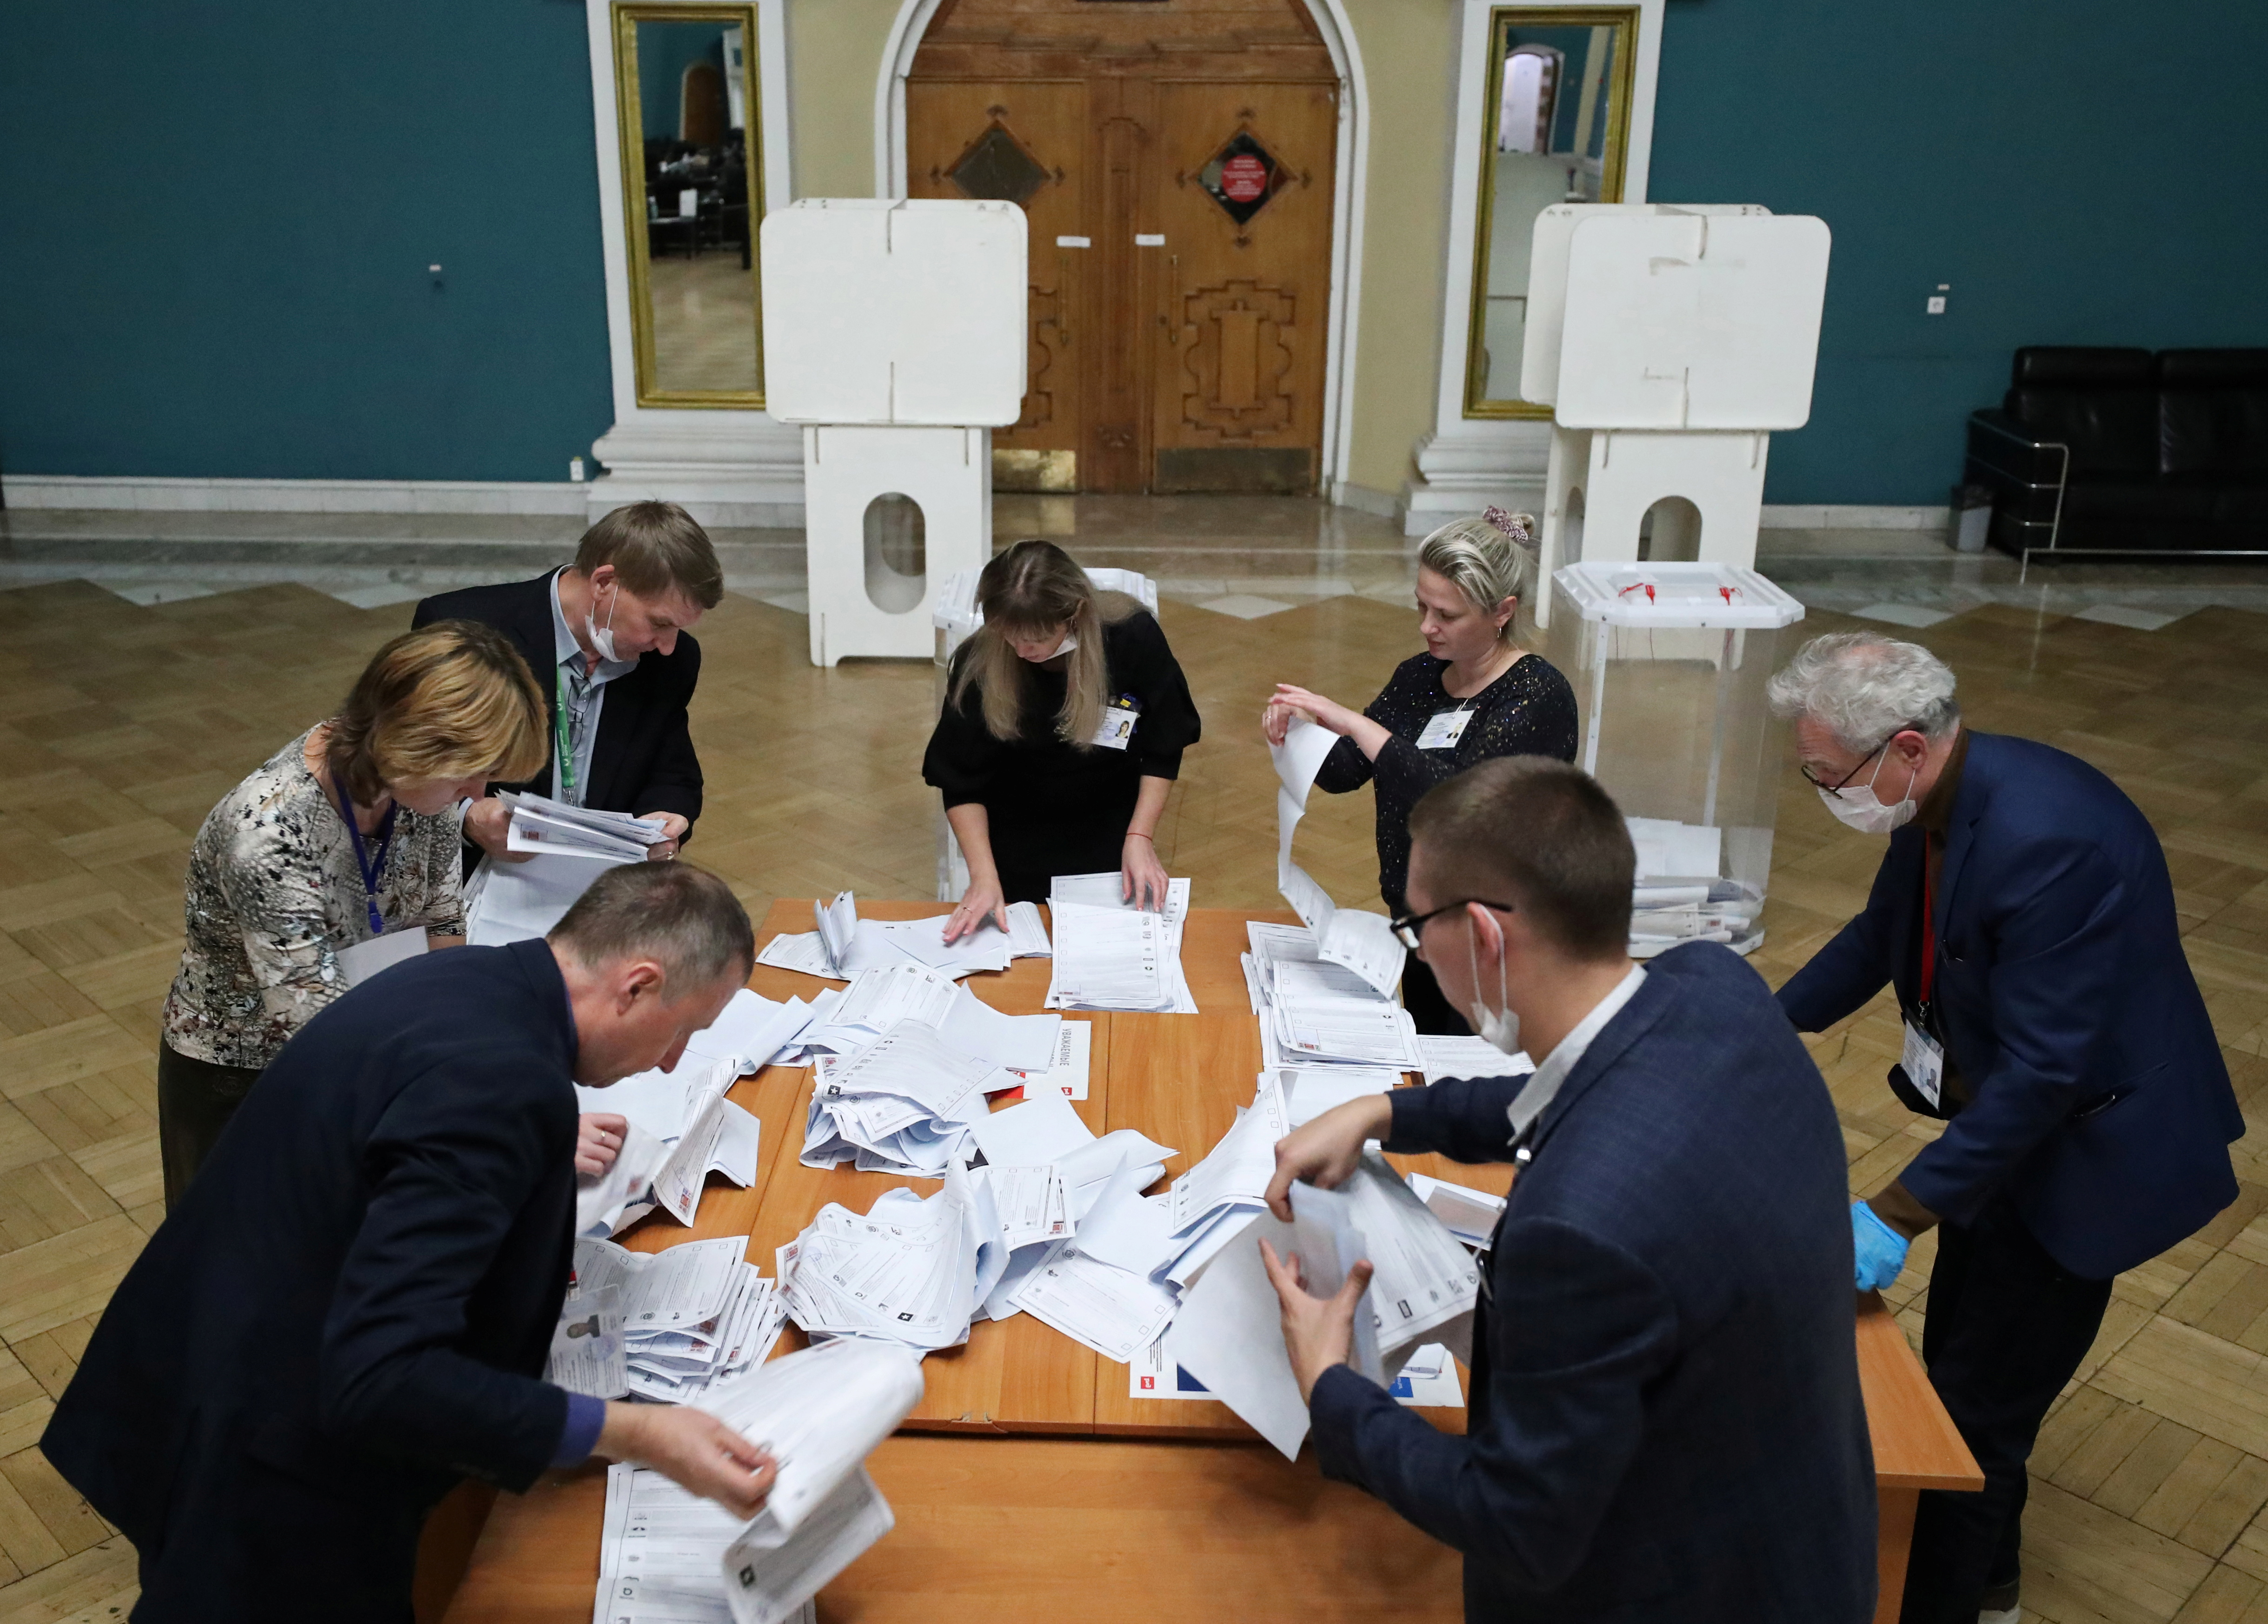 Members of a local election commission count ballots at a polling station inside Kazansky railway terminal after polls closed during a three-day long parliamentary election in Moscow, Russia September 19, 2021. REUTERS/Evgenia Novozhenina